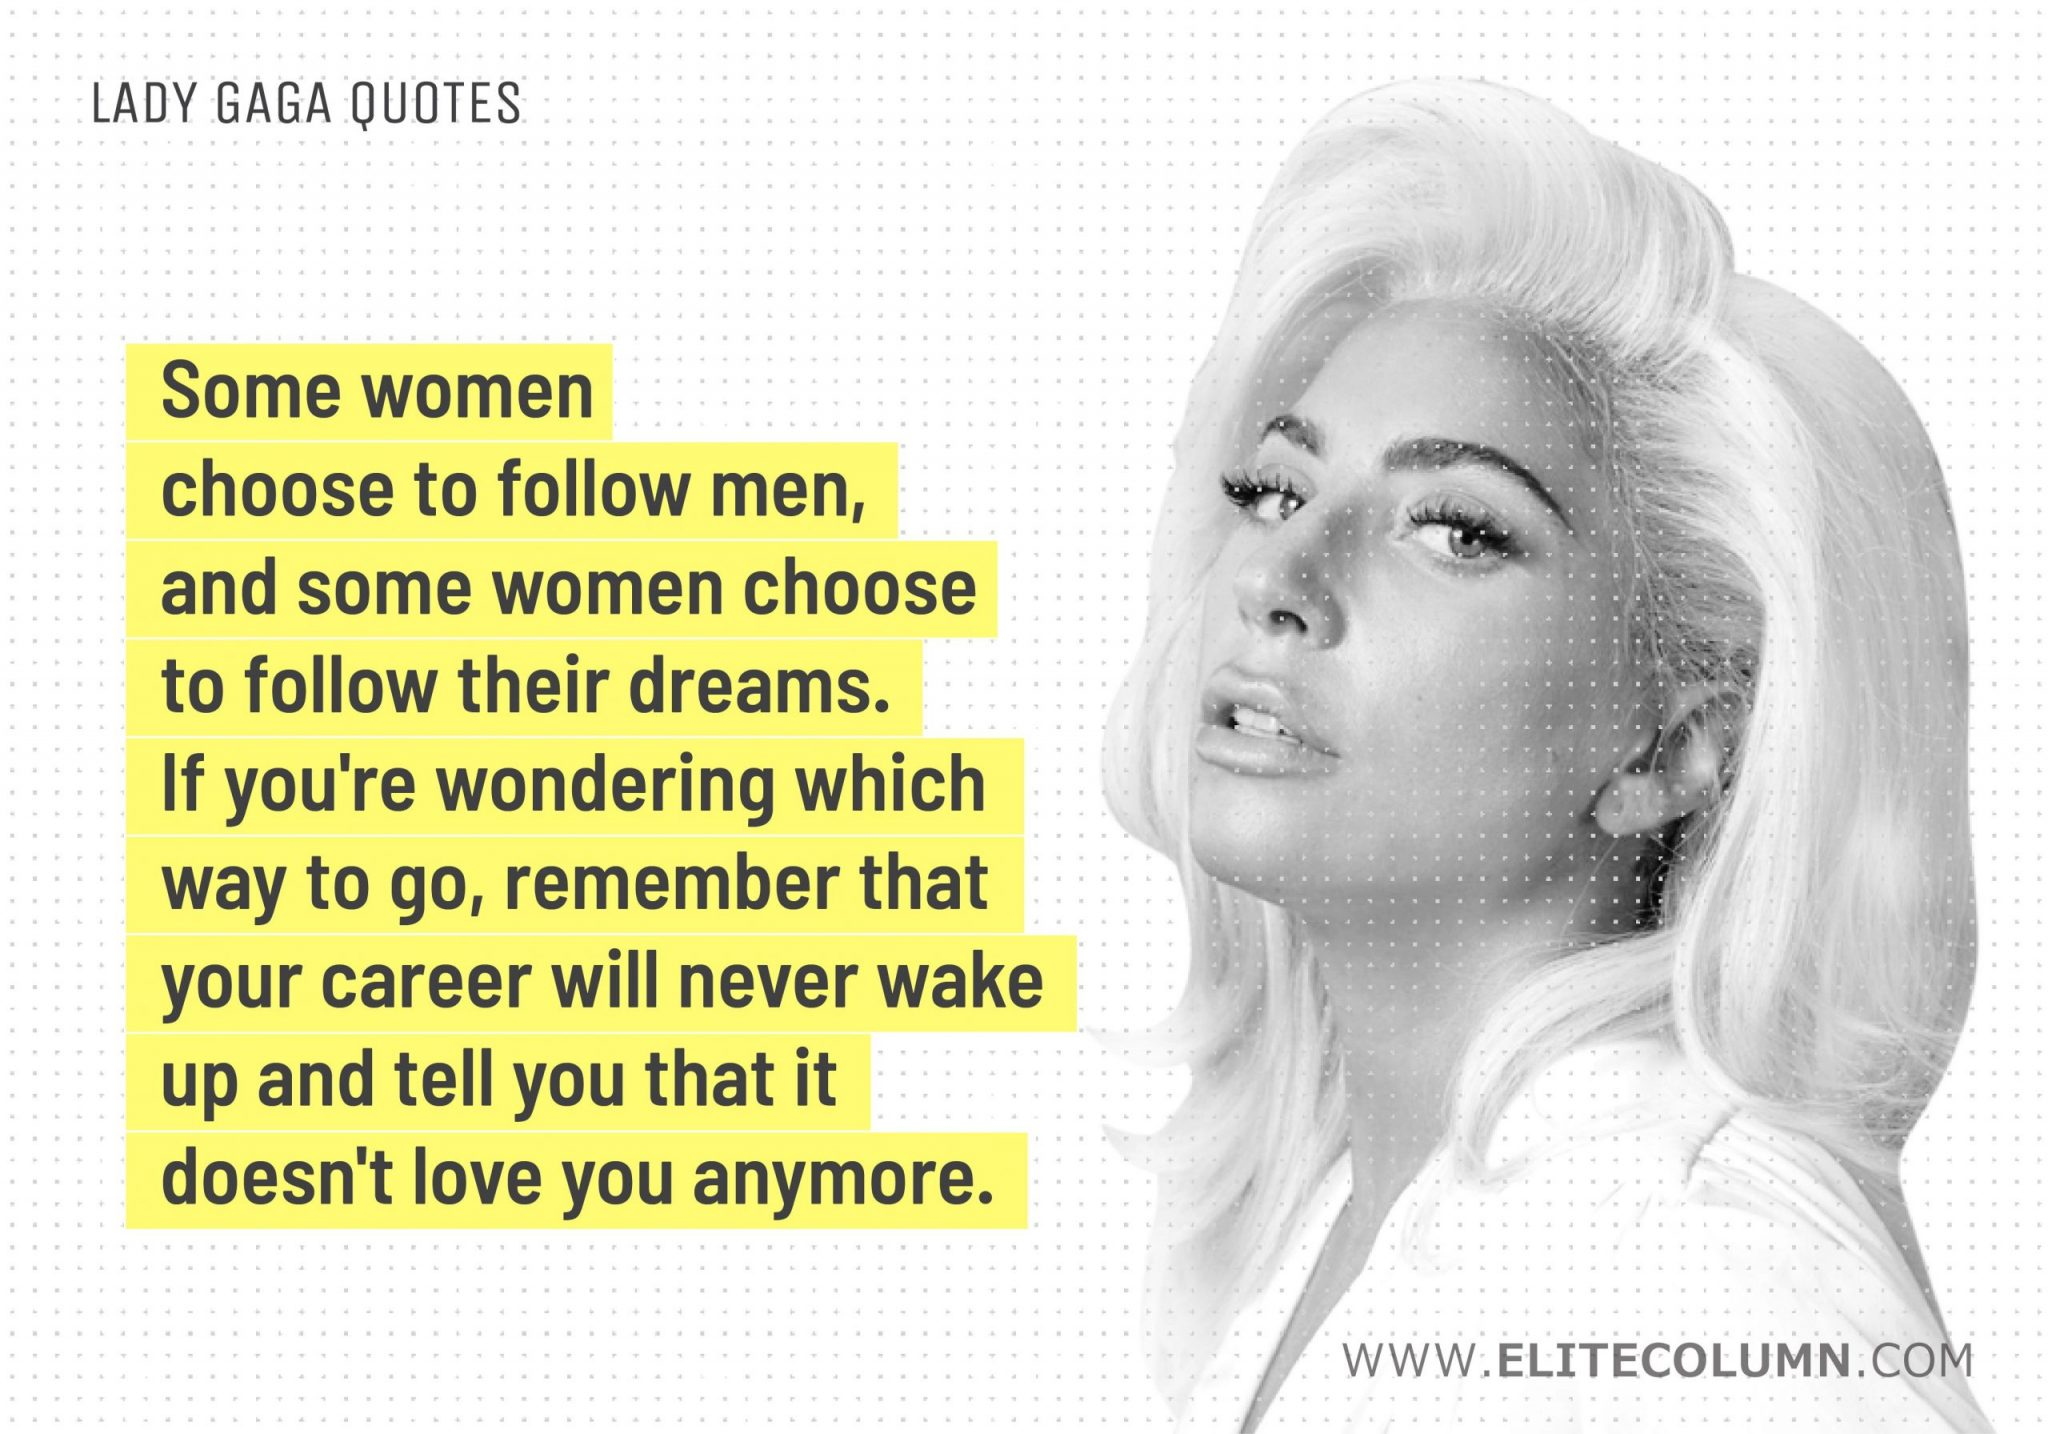 Lady Gaga Quotes (1)